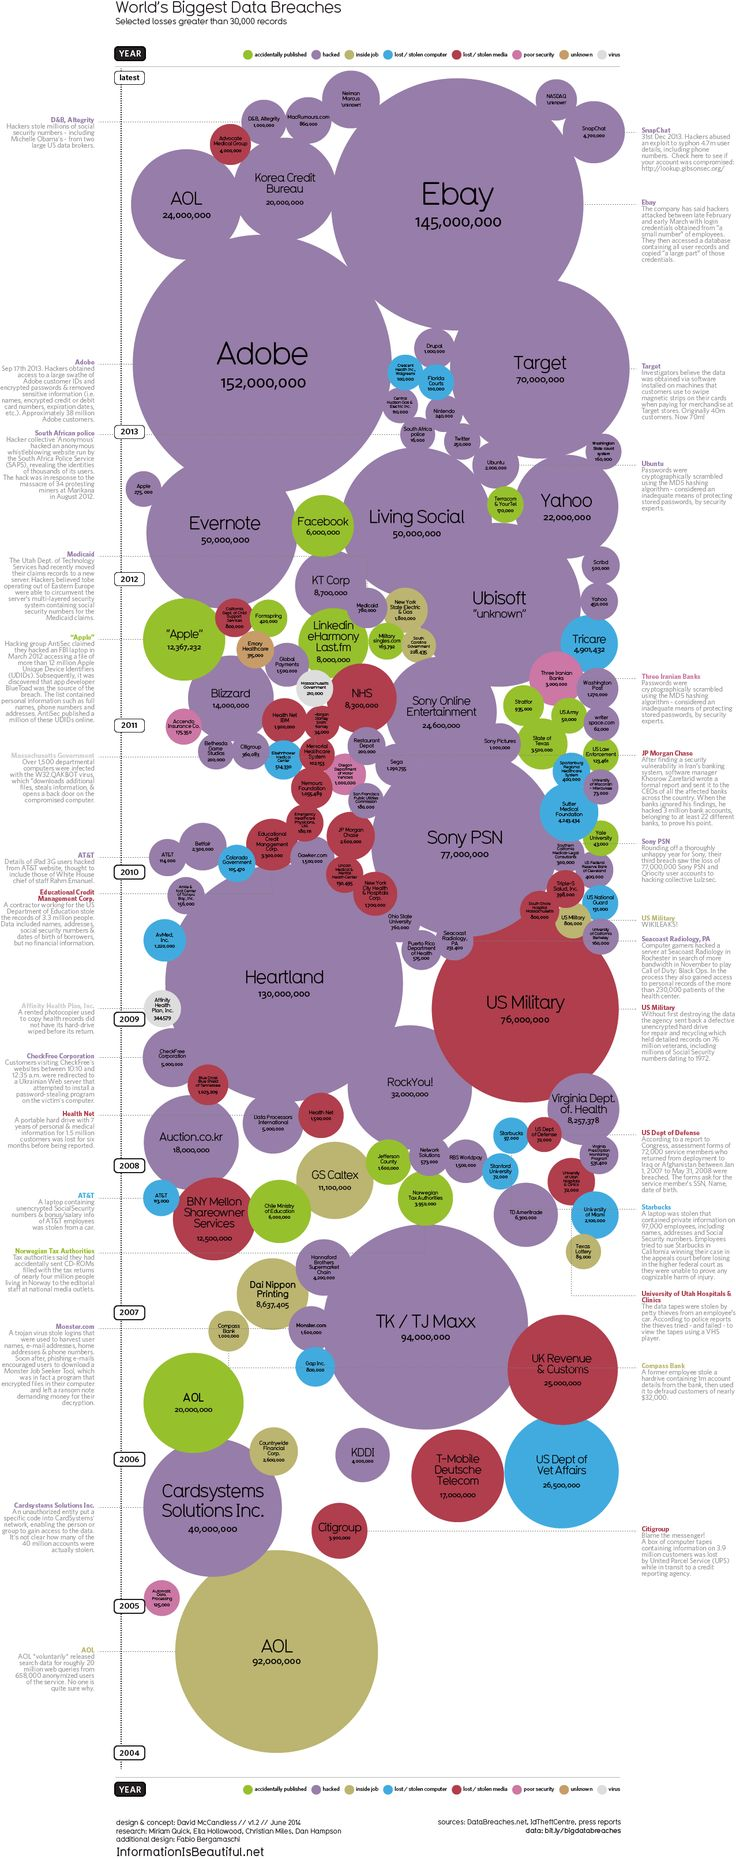 66 best infoisbeautiful images on pinterest info graphics worlds biggest data breaches static information is beautiful pooptronica